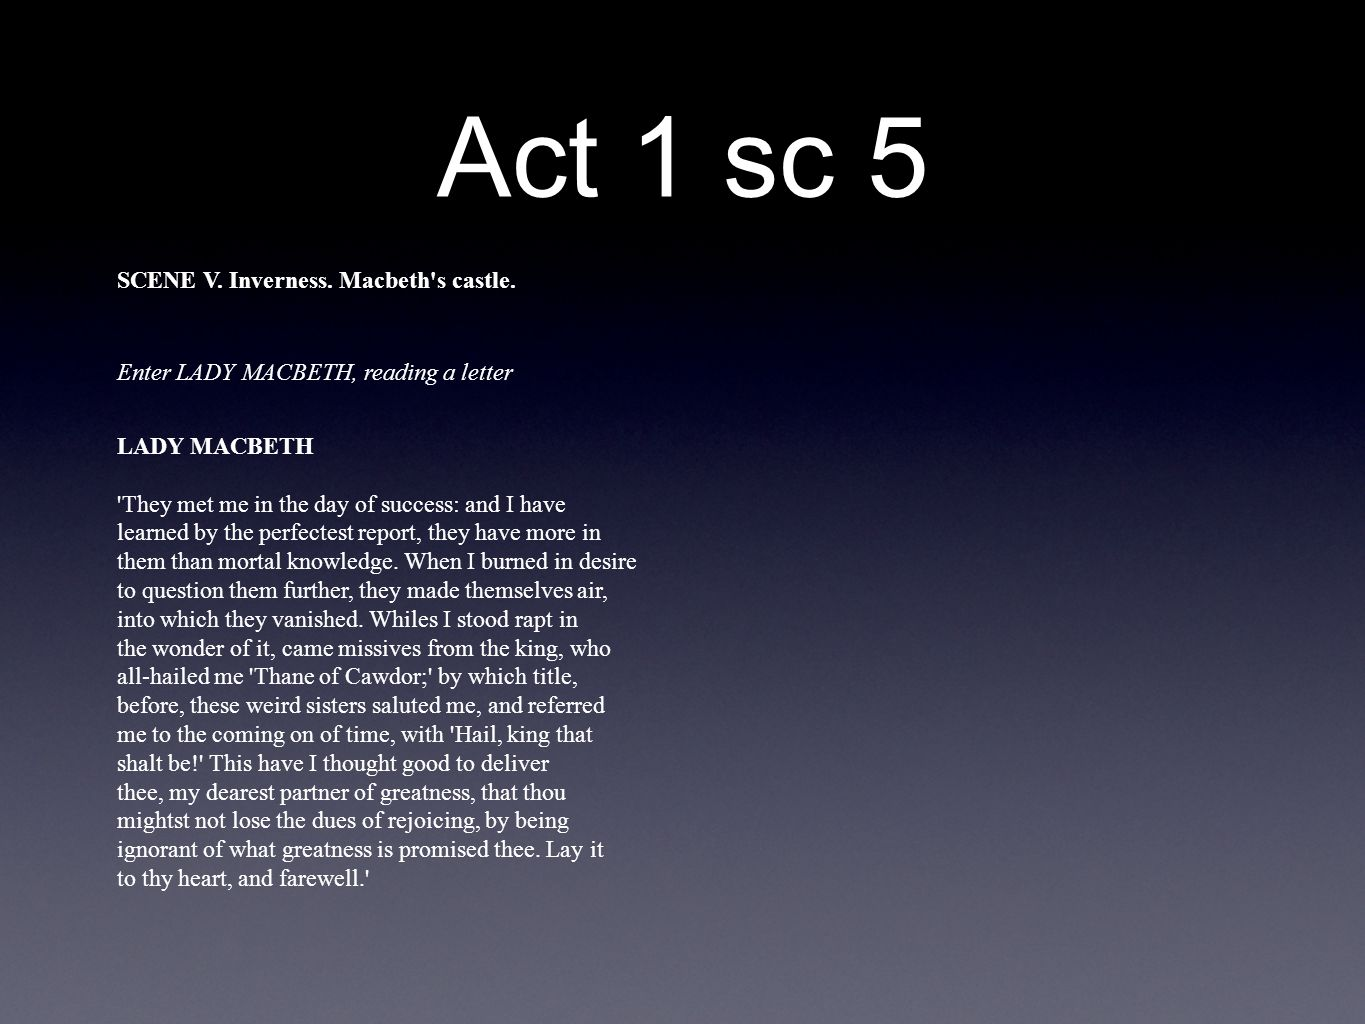 an analysis of act v of the play macbeth As the play nears its bloody conclusion, macbeth's tragic flaw comes to the kuriyama, taro ed macbeth act 5 summary and analysis gradesaver, 23 june 2008.